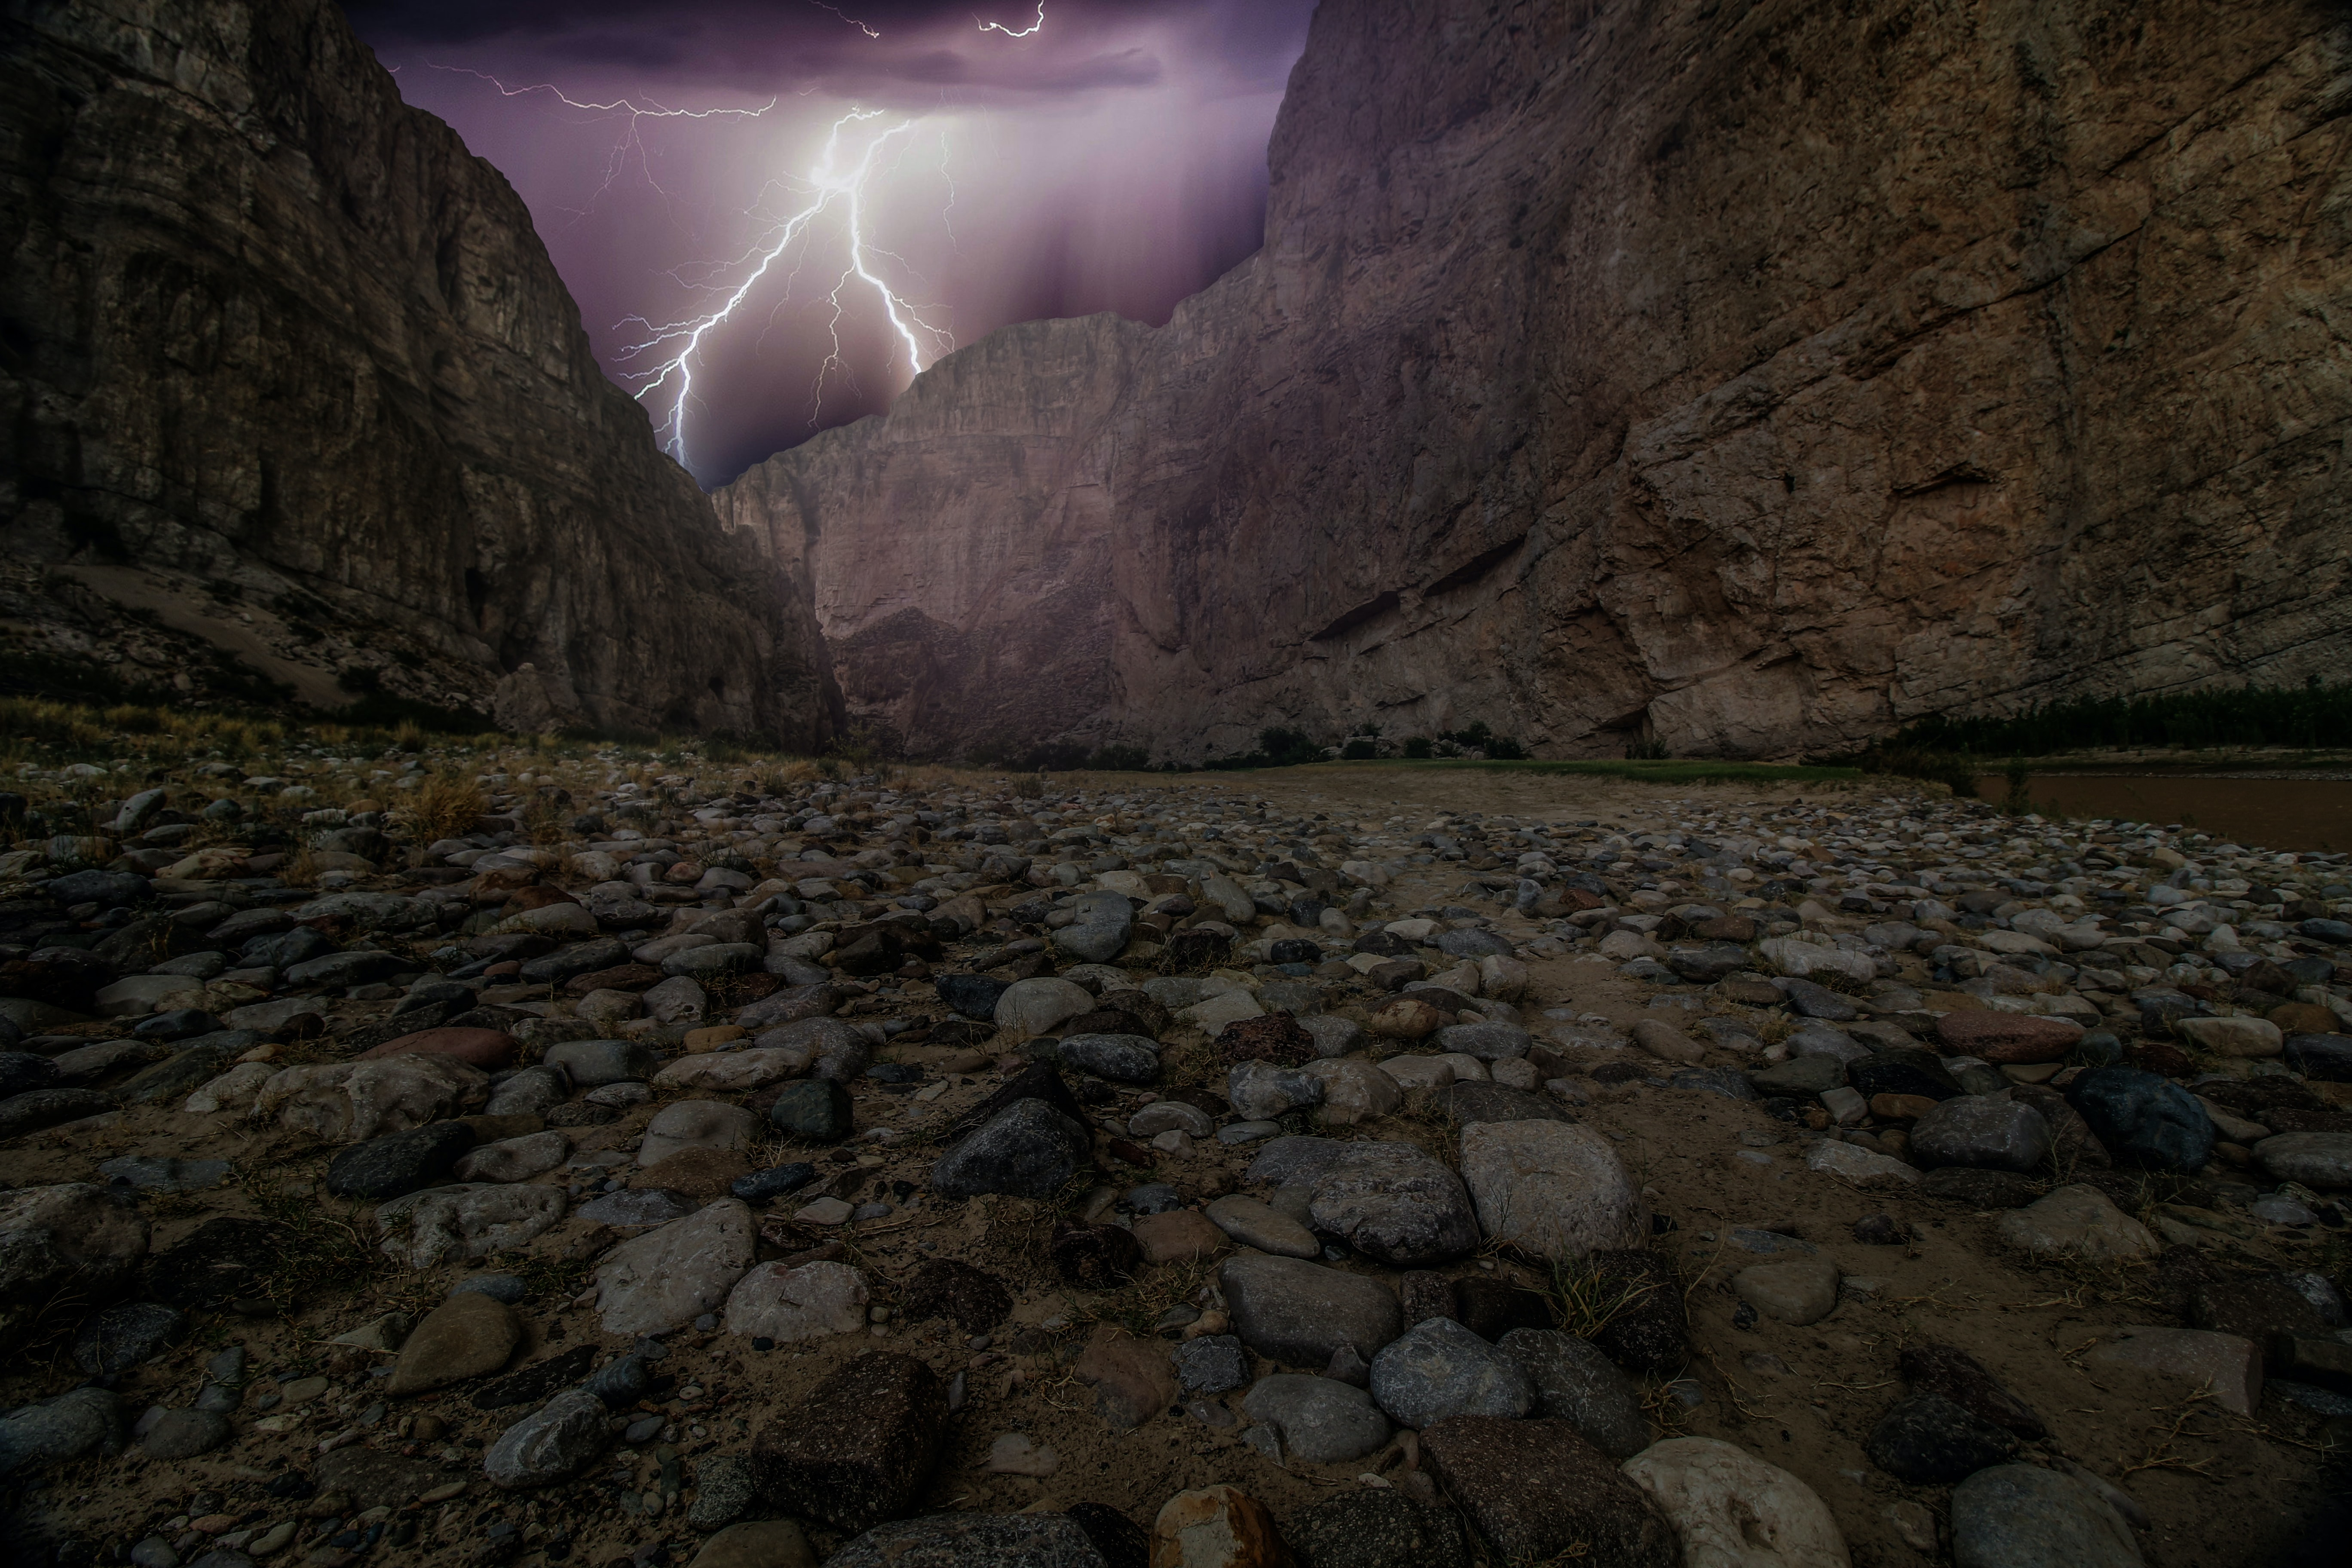 Bolt of lightning seen behind the rocky Boquillas Canyon during a storm